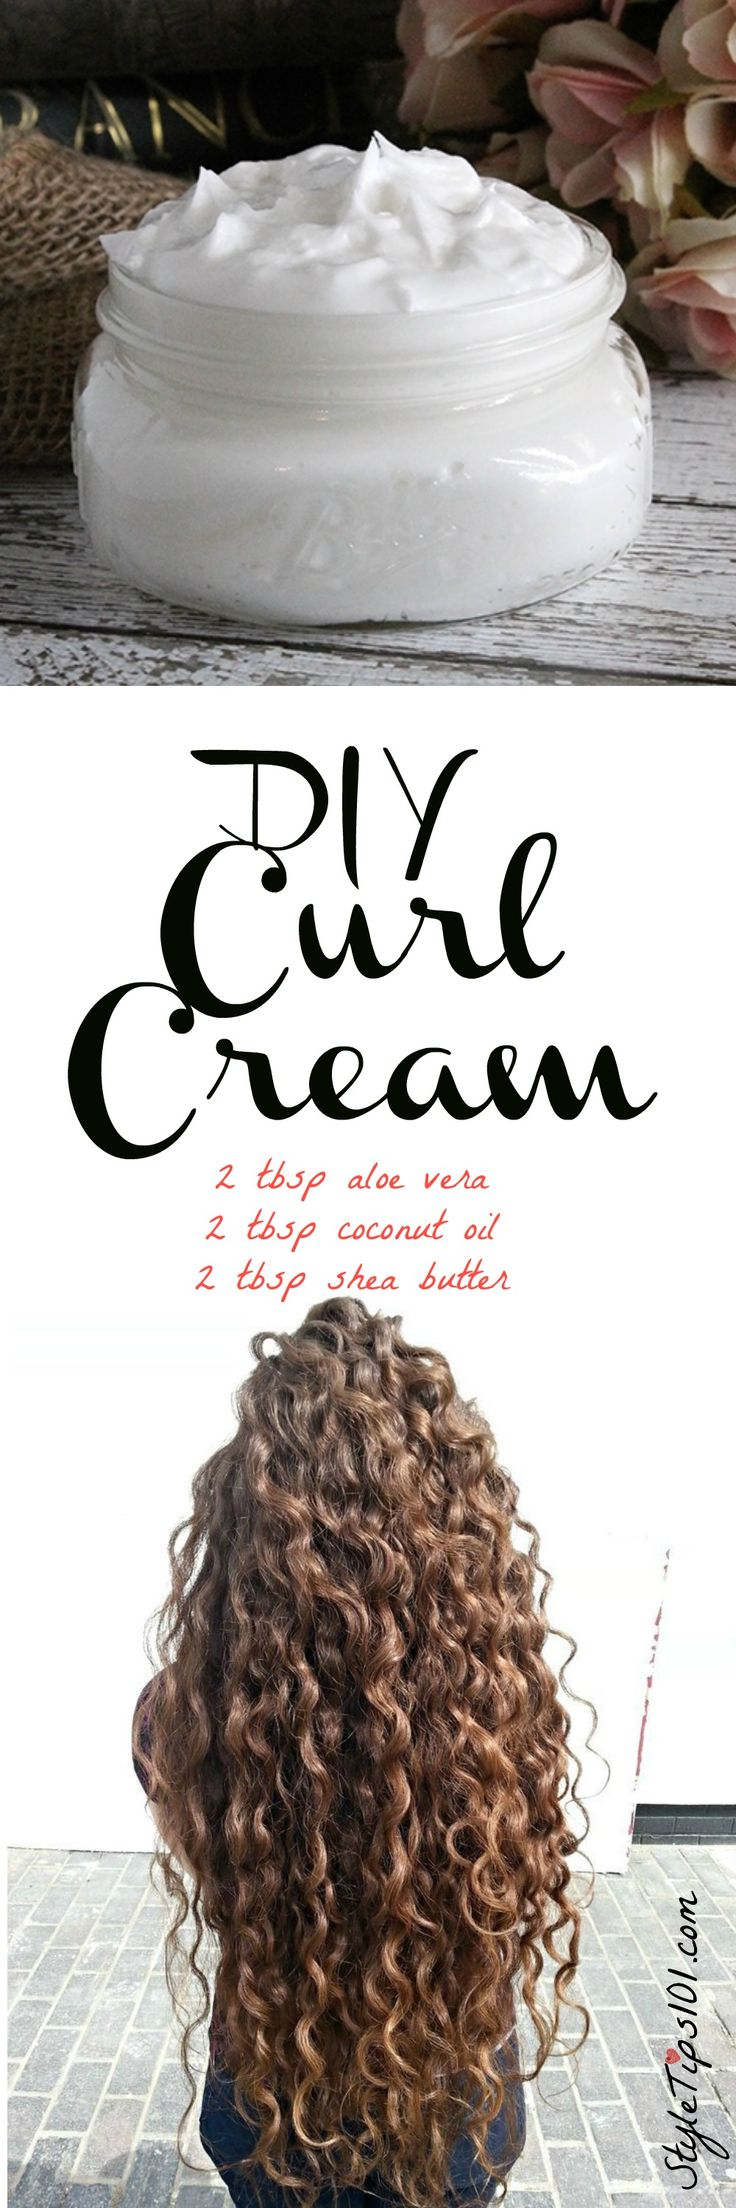 DIY Curl Cream - 2 T aloe, 2 T coconut, 2 T shea butter